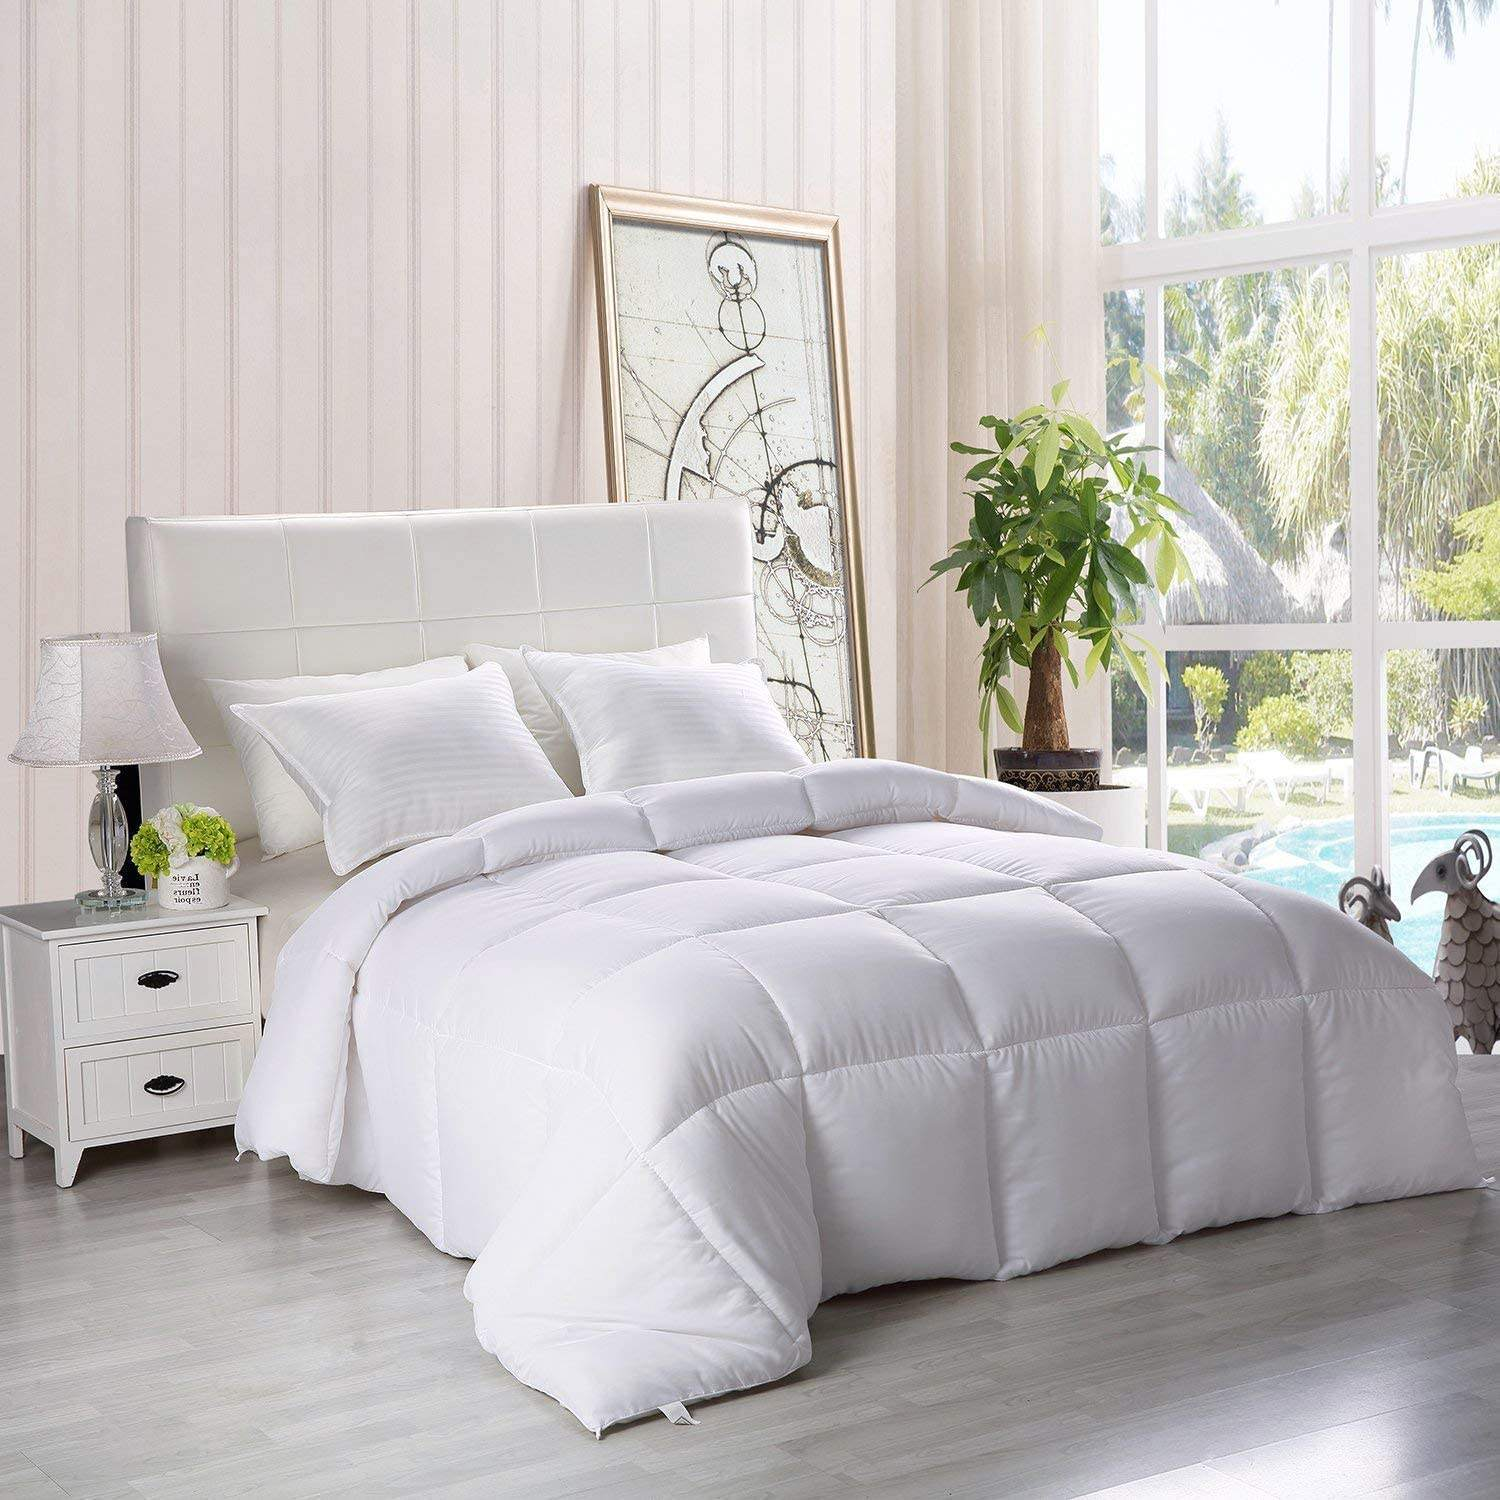 Wholesale Luxury White Goose Down Comforter 100% Cotton Cover Quilted Duvet Insert Down Alternative for All Season